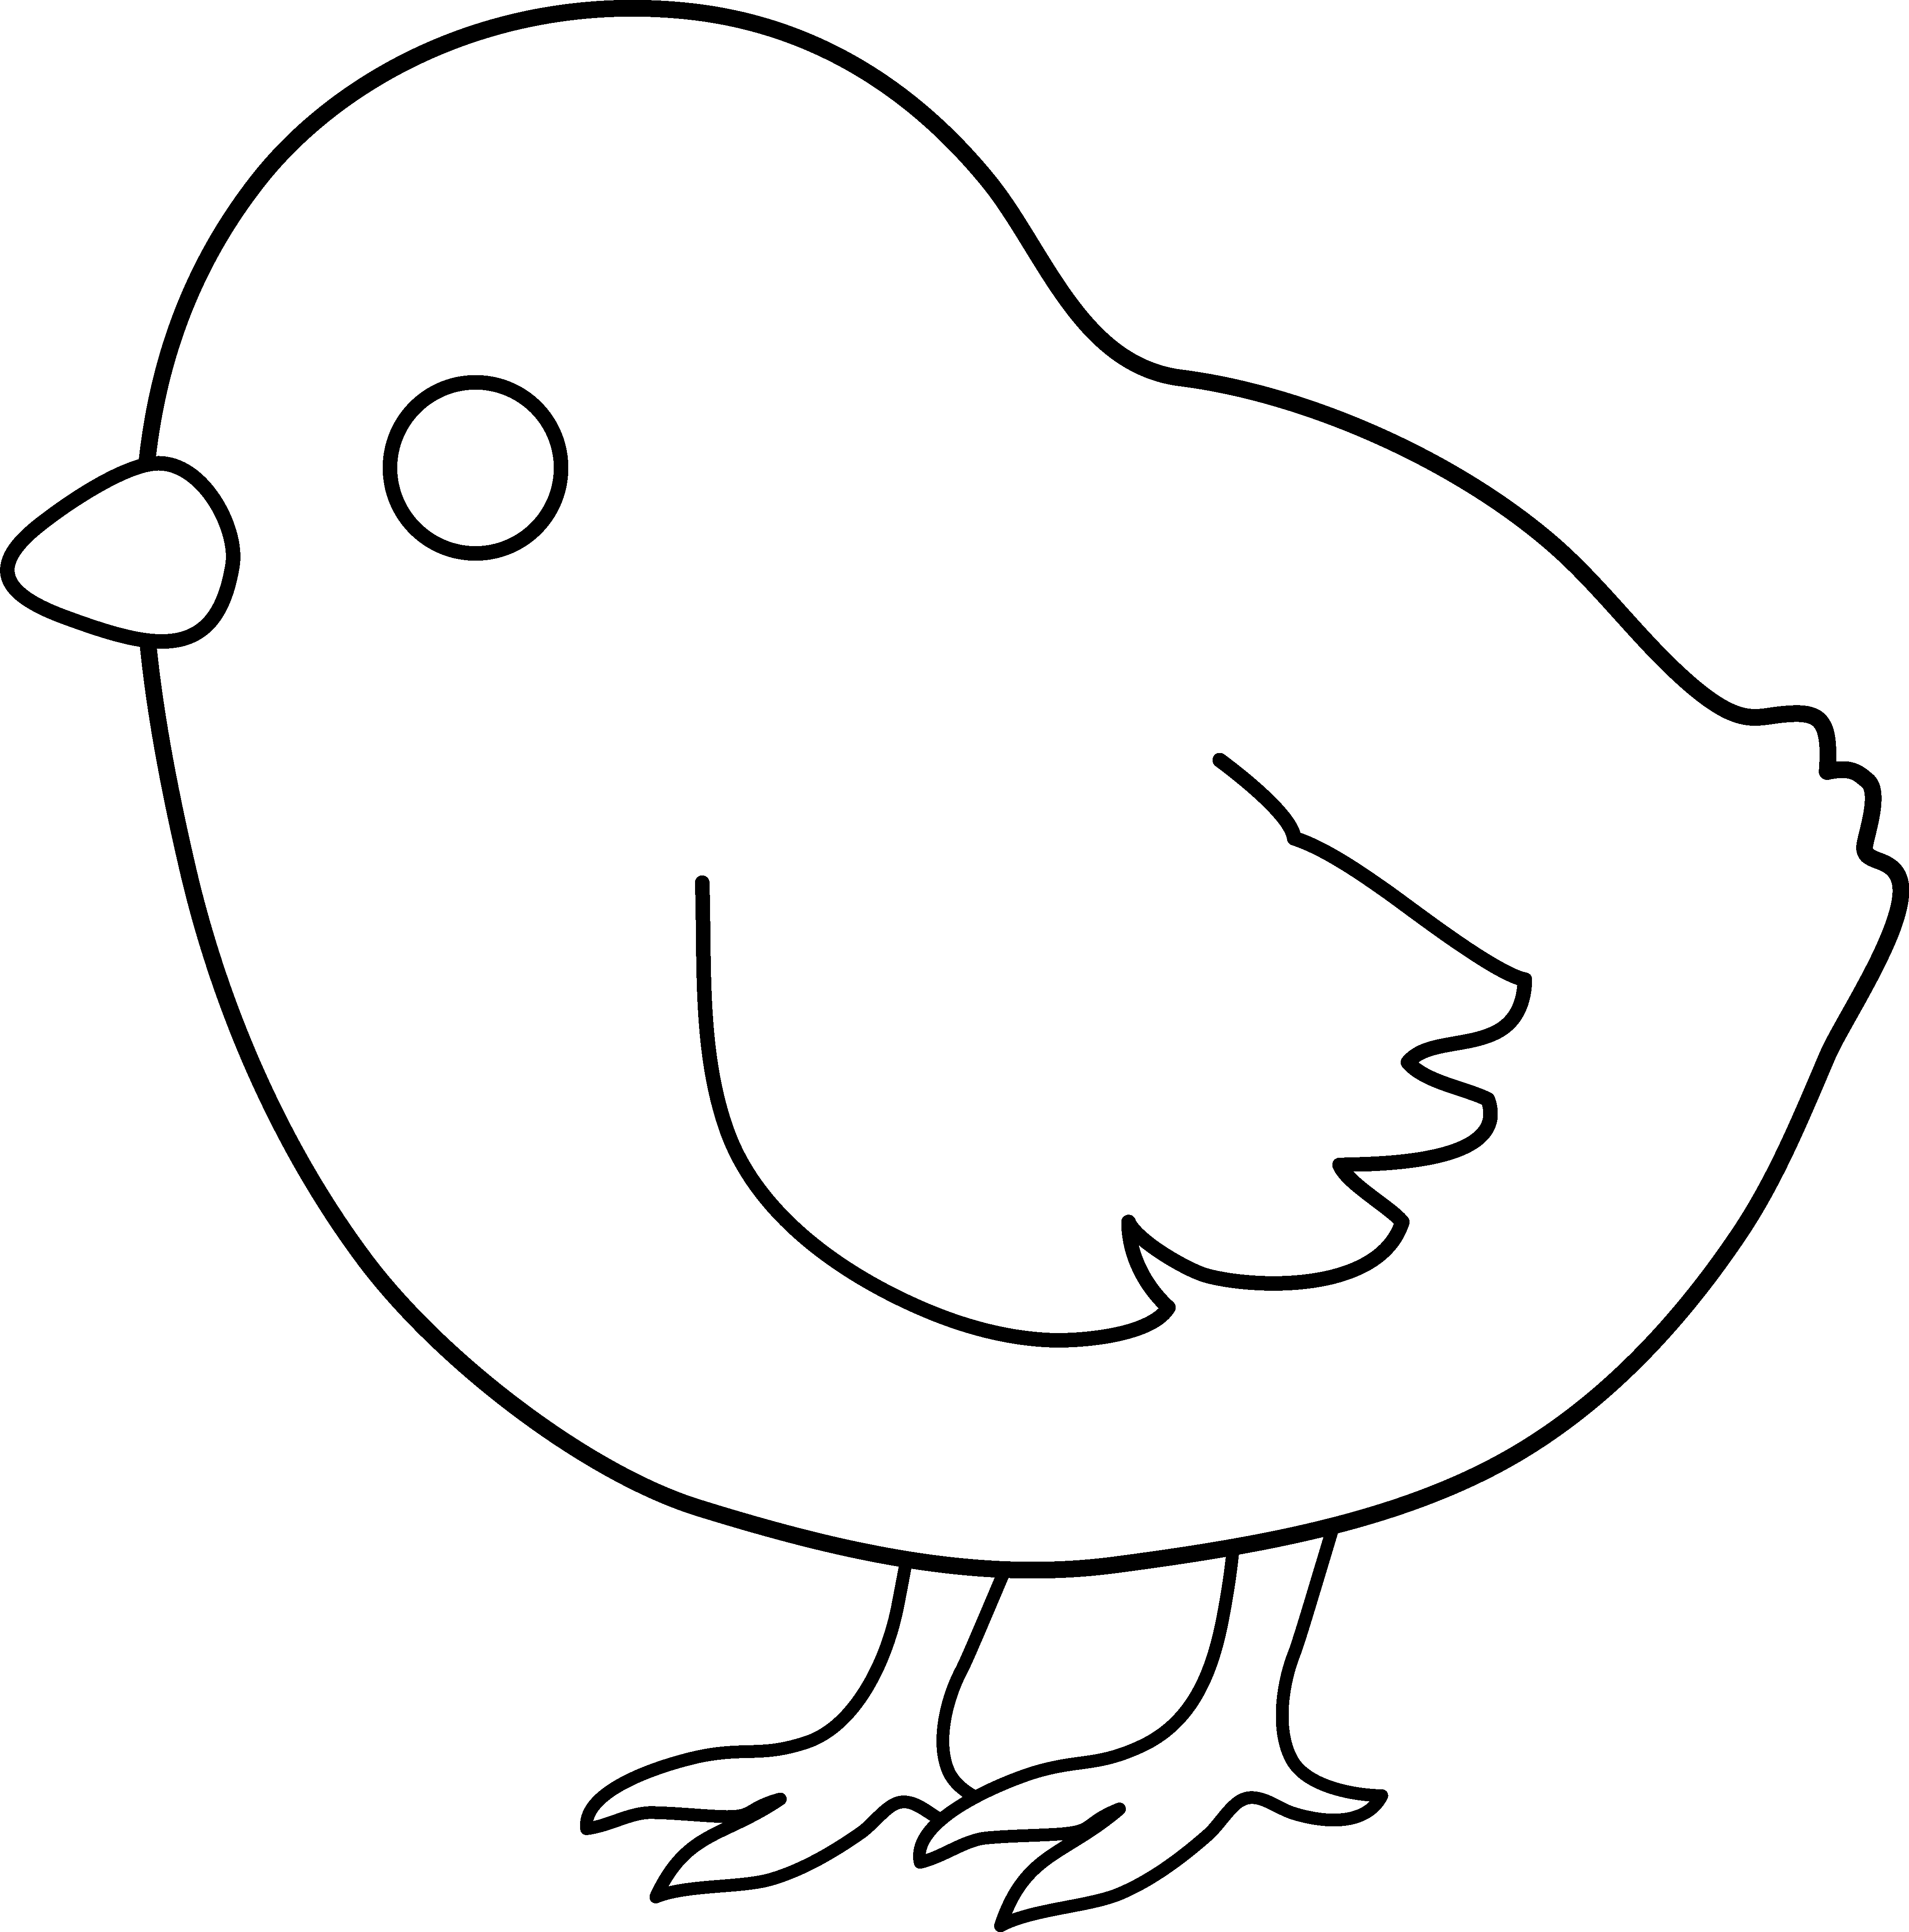 baby chick coloring page - baby chick line art easter pinterest easter crafts